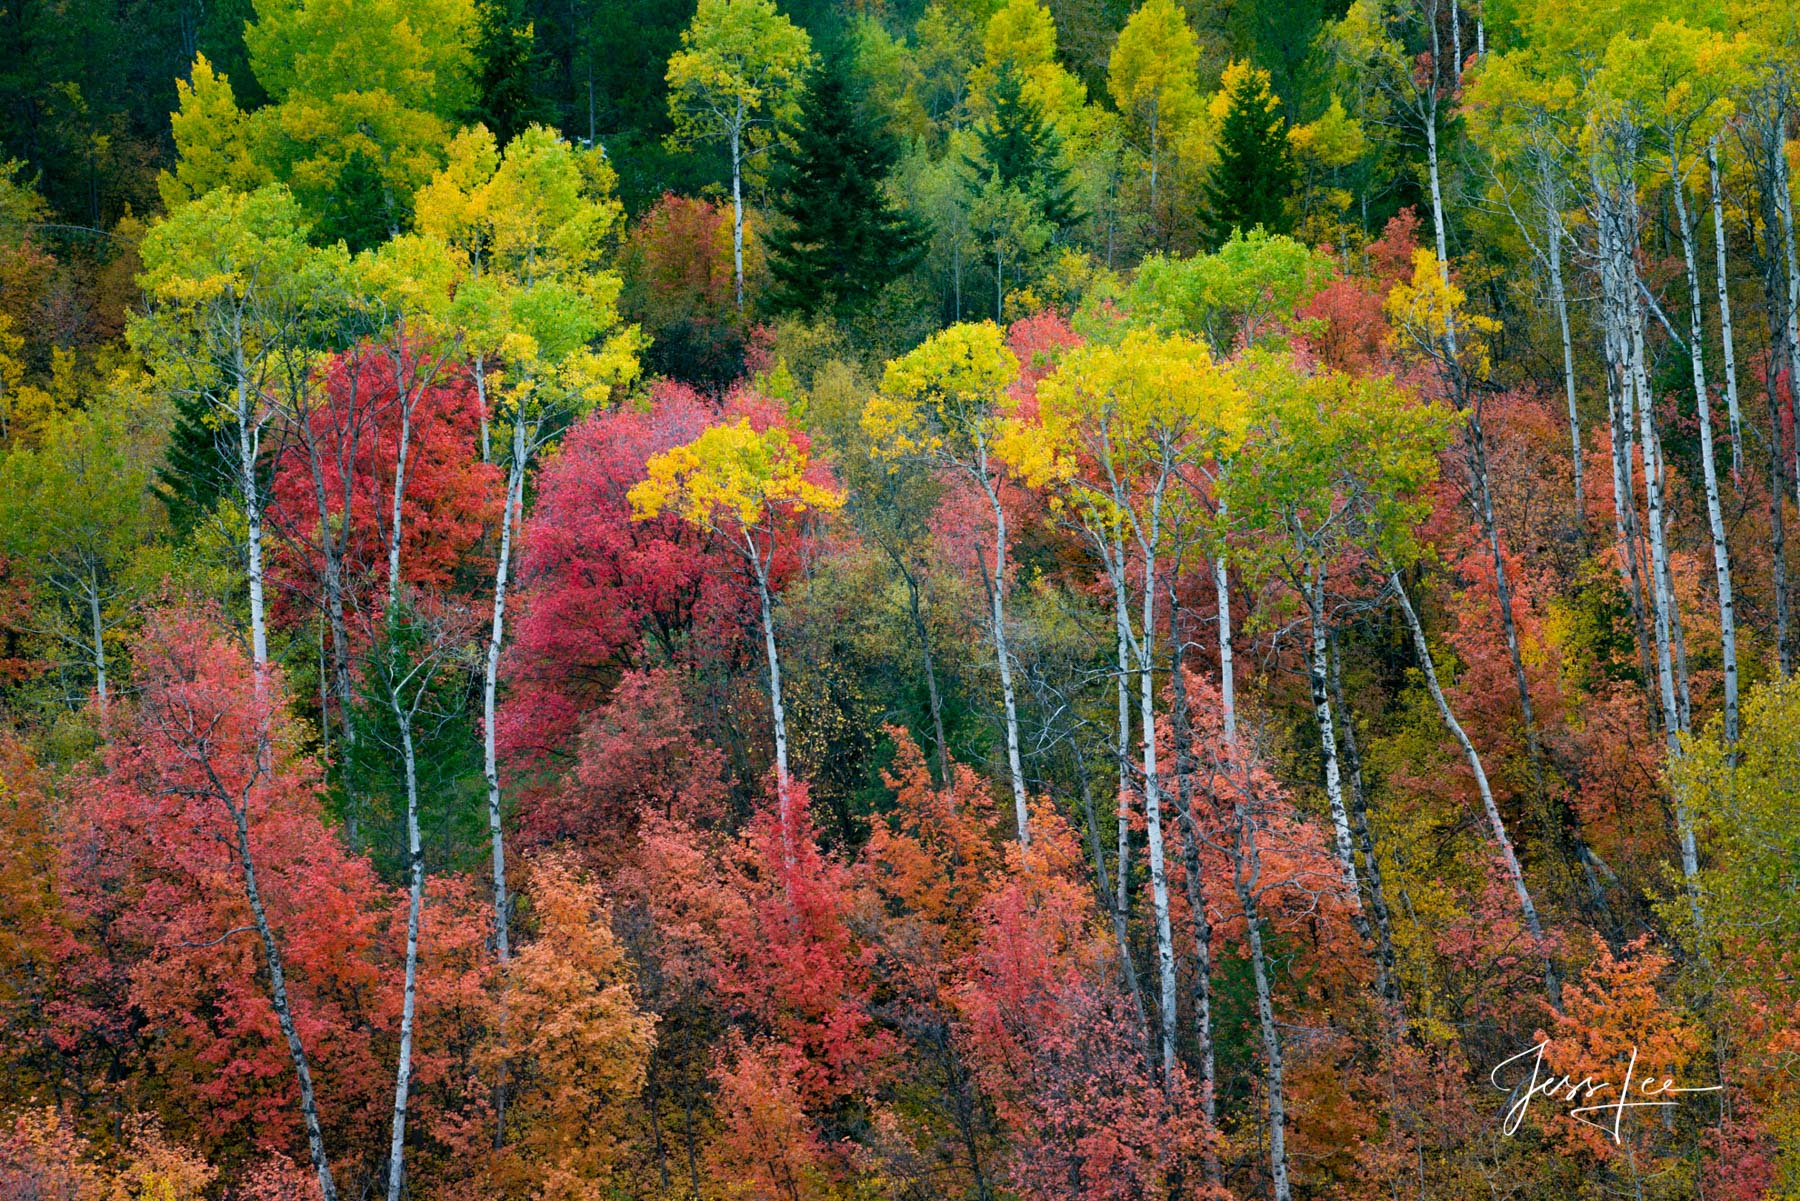 Limited Edition of 50 Exclusive high-resolution Museum Quality Fine Art Prints of a Mixed Bag of fall colored trees in the Idaho...